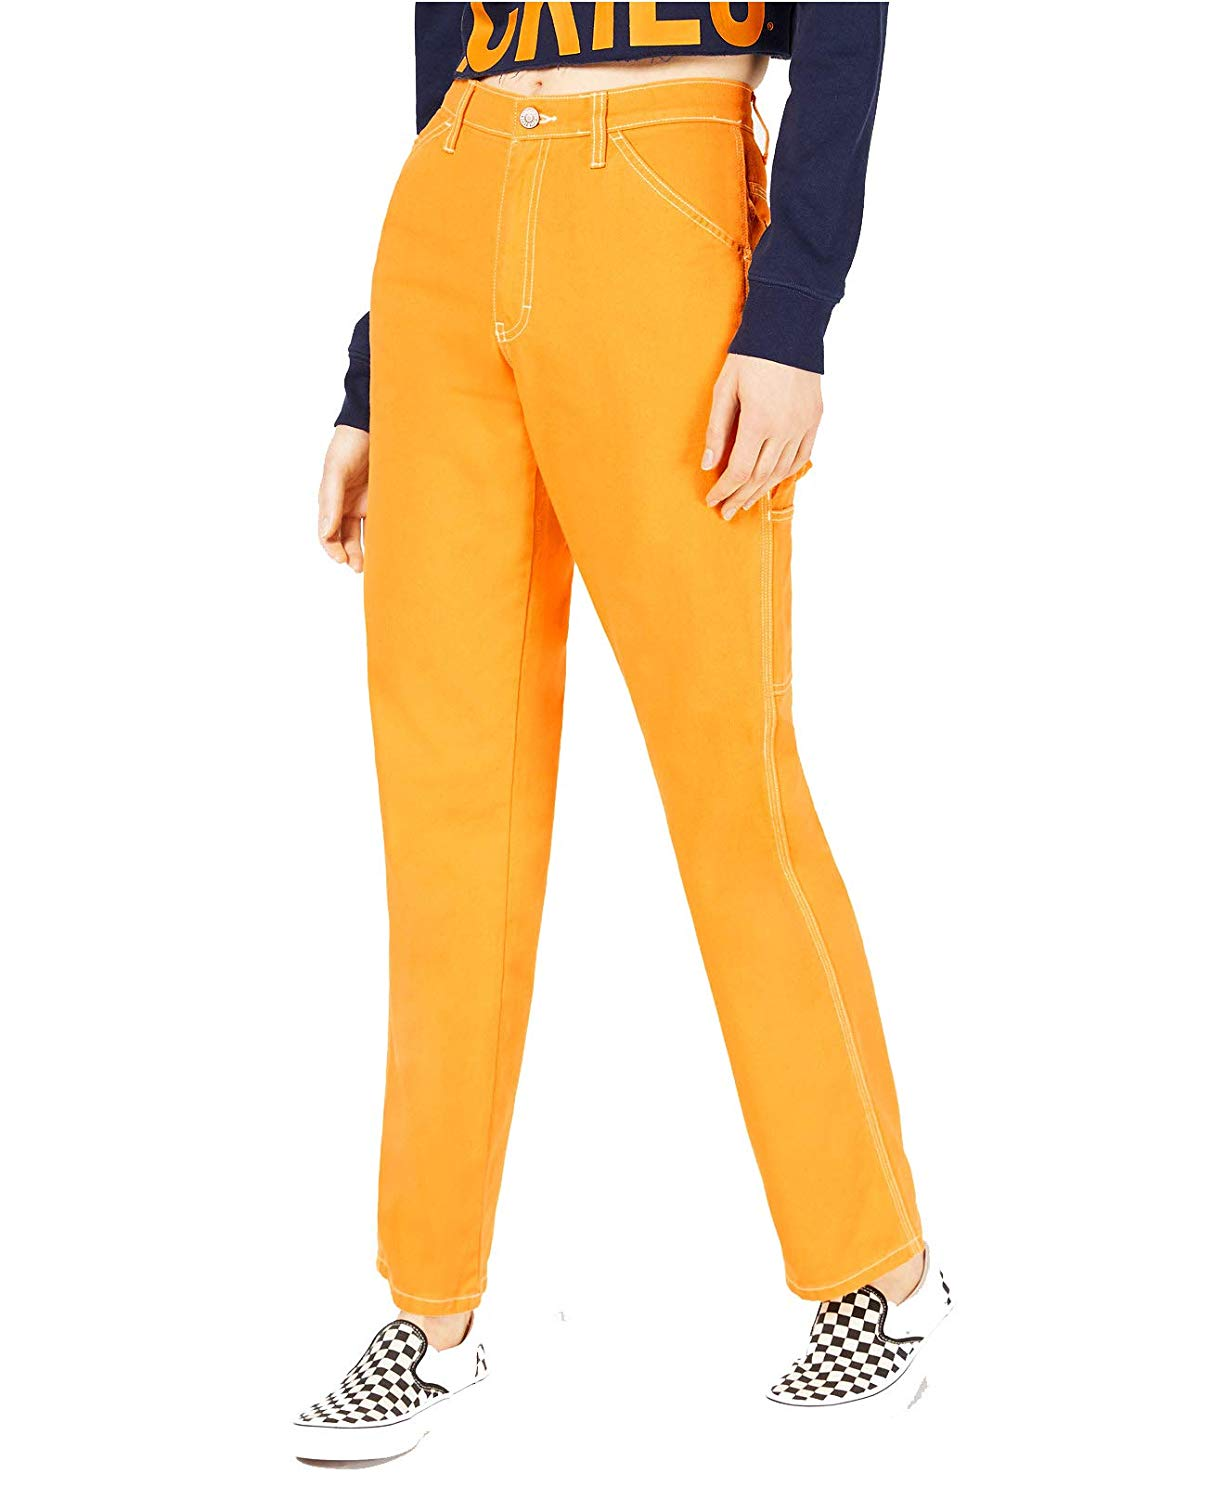 Amazon.com: Dickies Girl Juniors' Relaxed Fit High-Rise Twill Carpenter Pants: Clothing